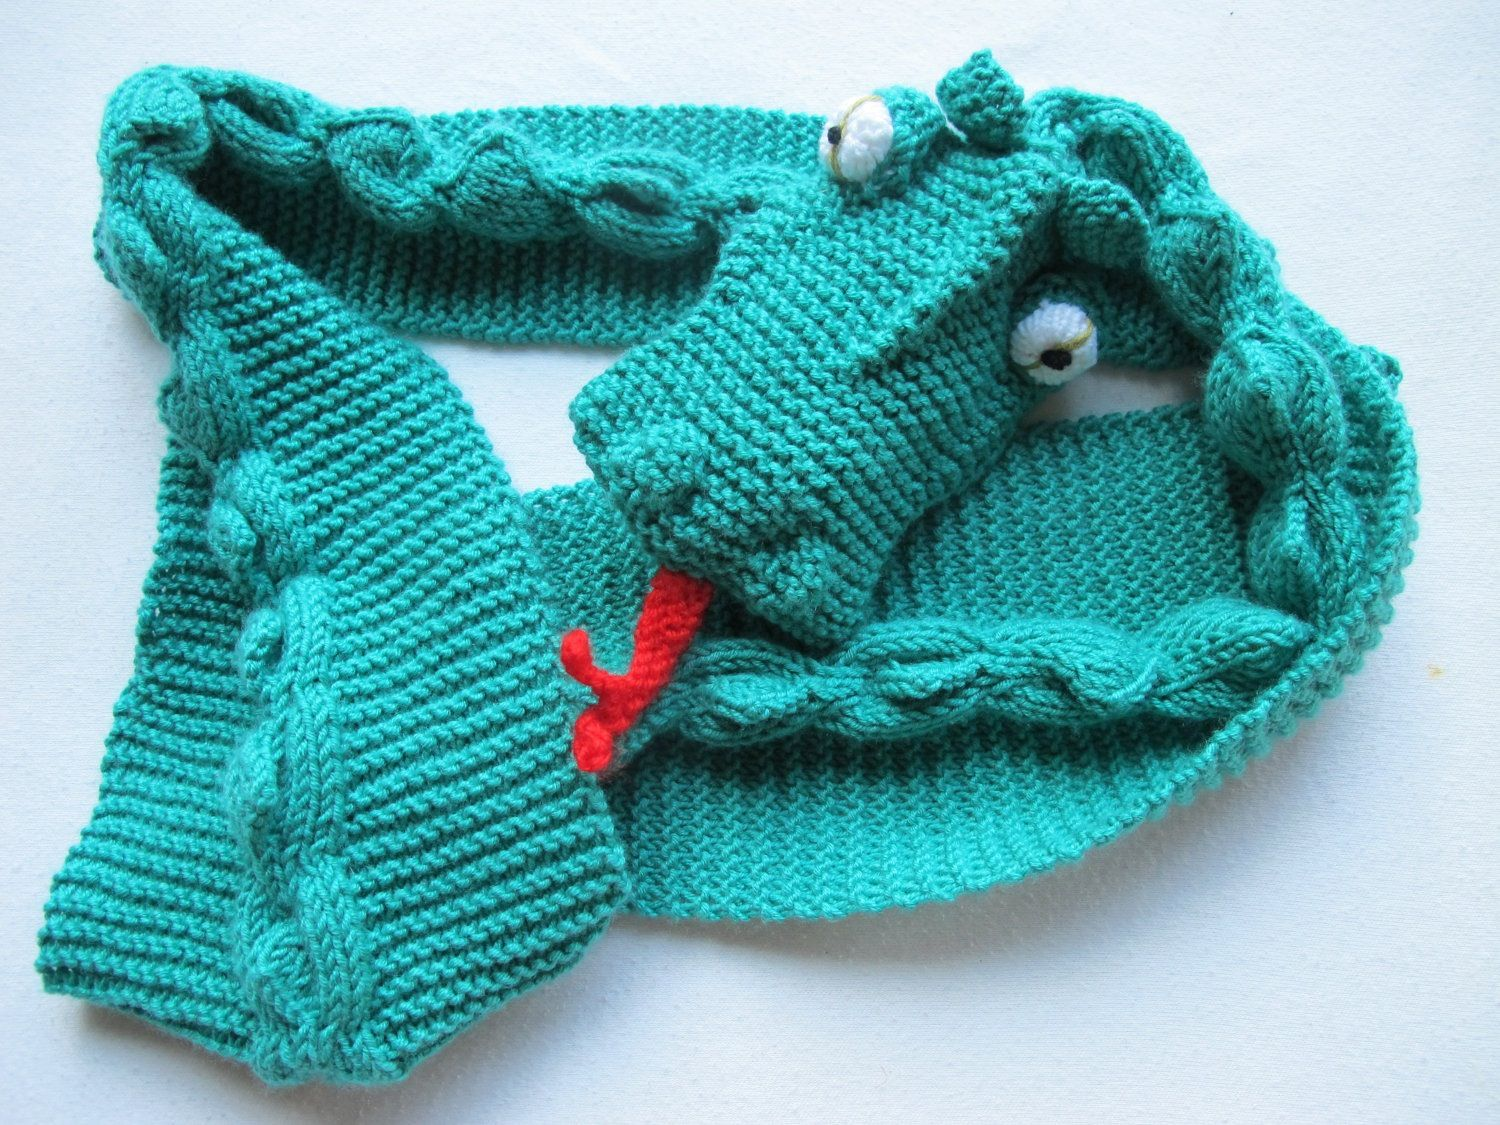 Knitting Pattern For Dragon Scarf : Dragon scarf, from Etsy. Knitting stuff Pinterest ...